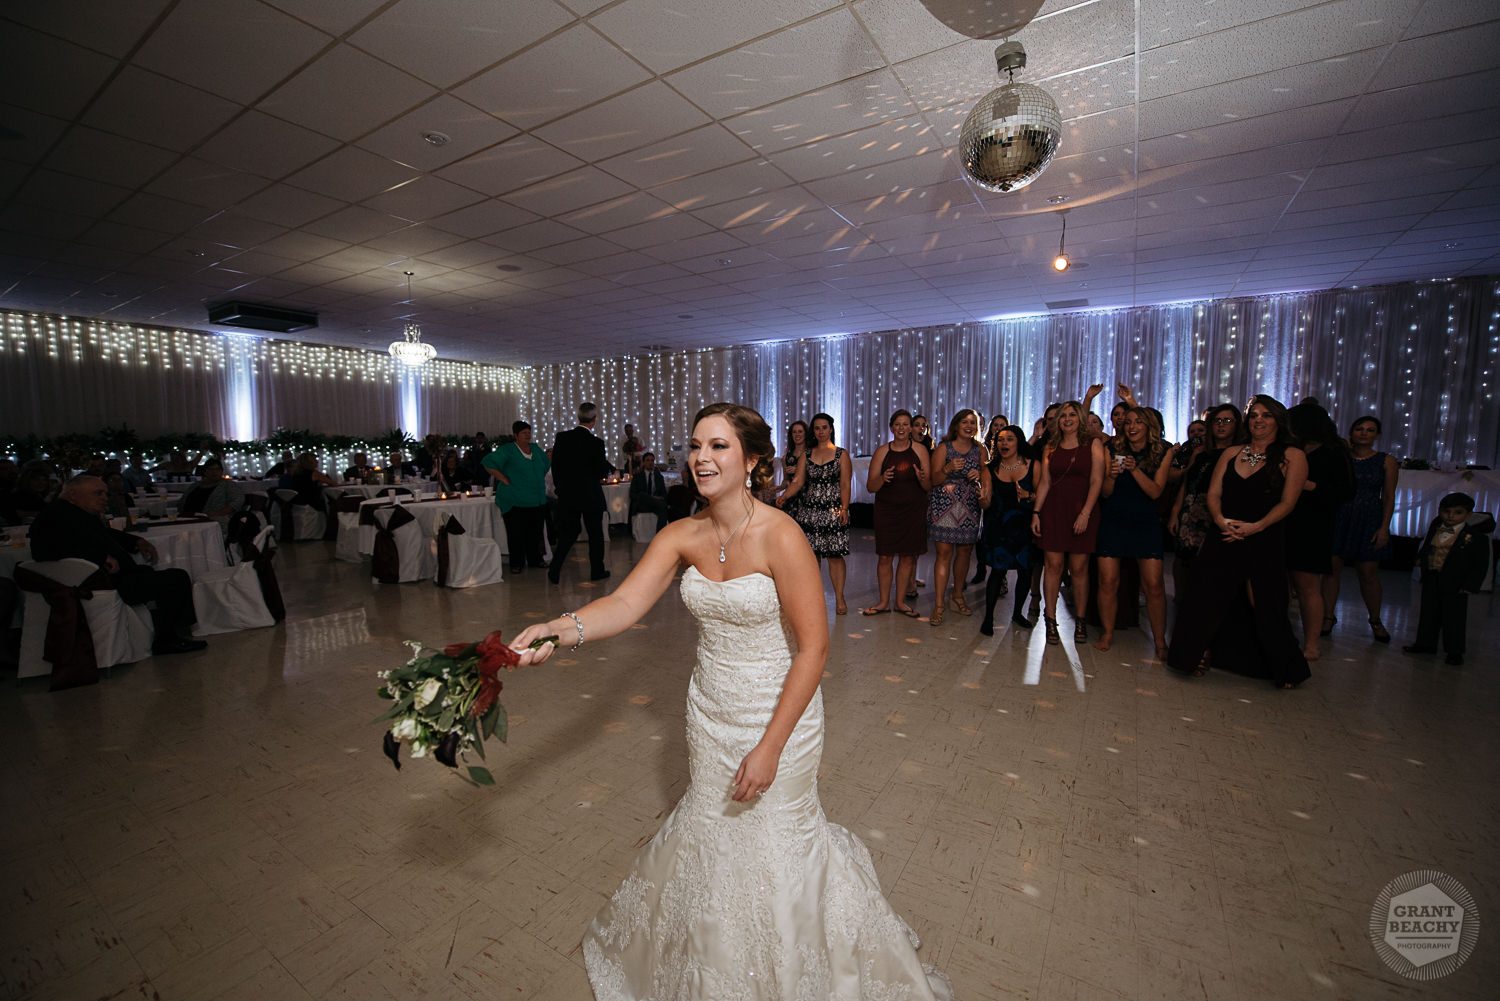 Grant Beachy wedding photographer, south bend, elkhart, chicago-54.jpg